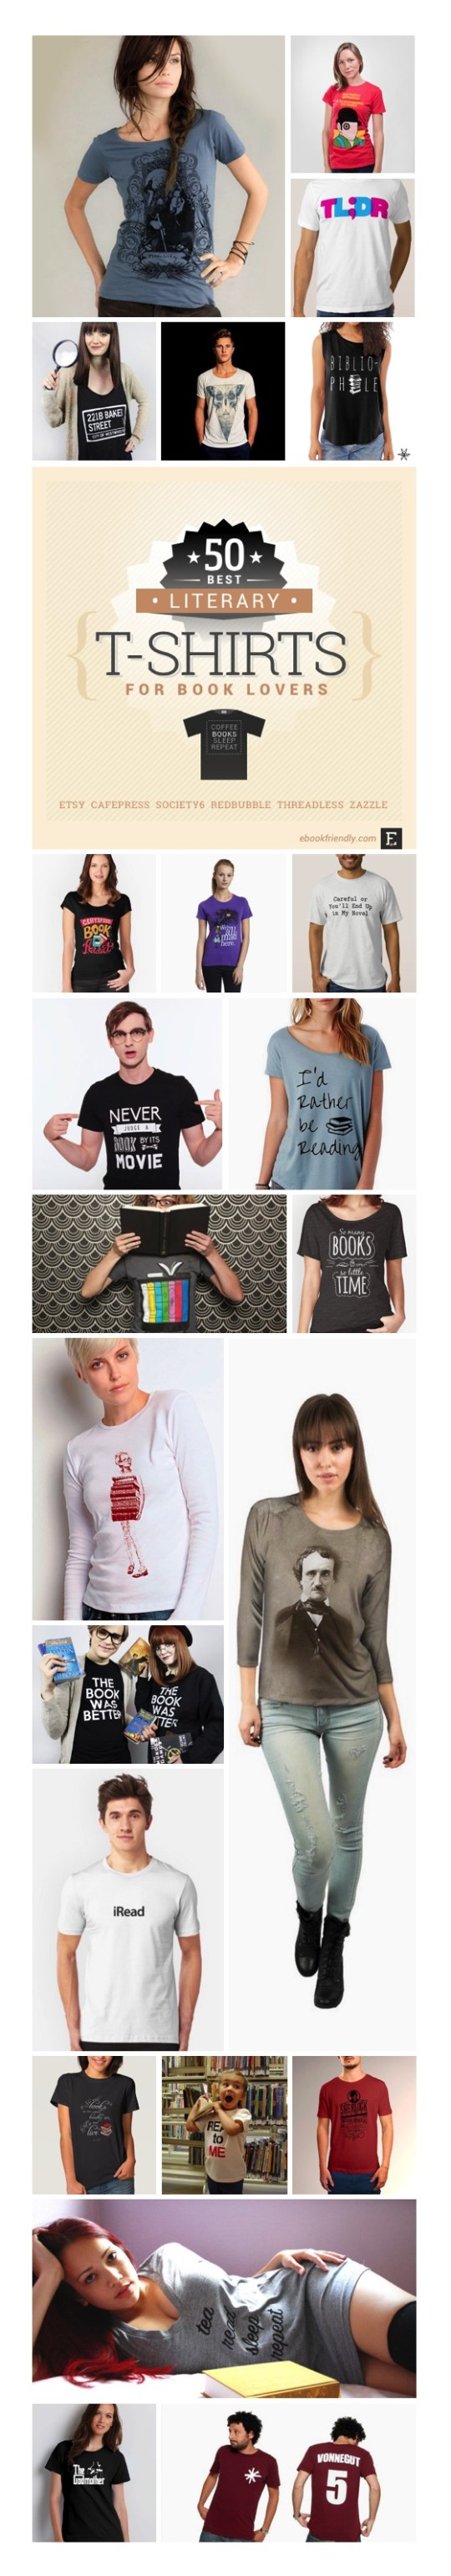 Design t shirt zazzle - Best Literary T Shirts For Book Lovers Infographic